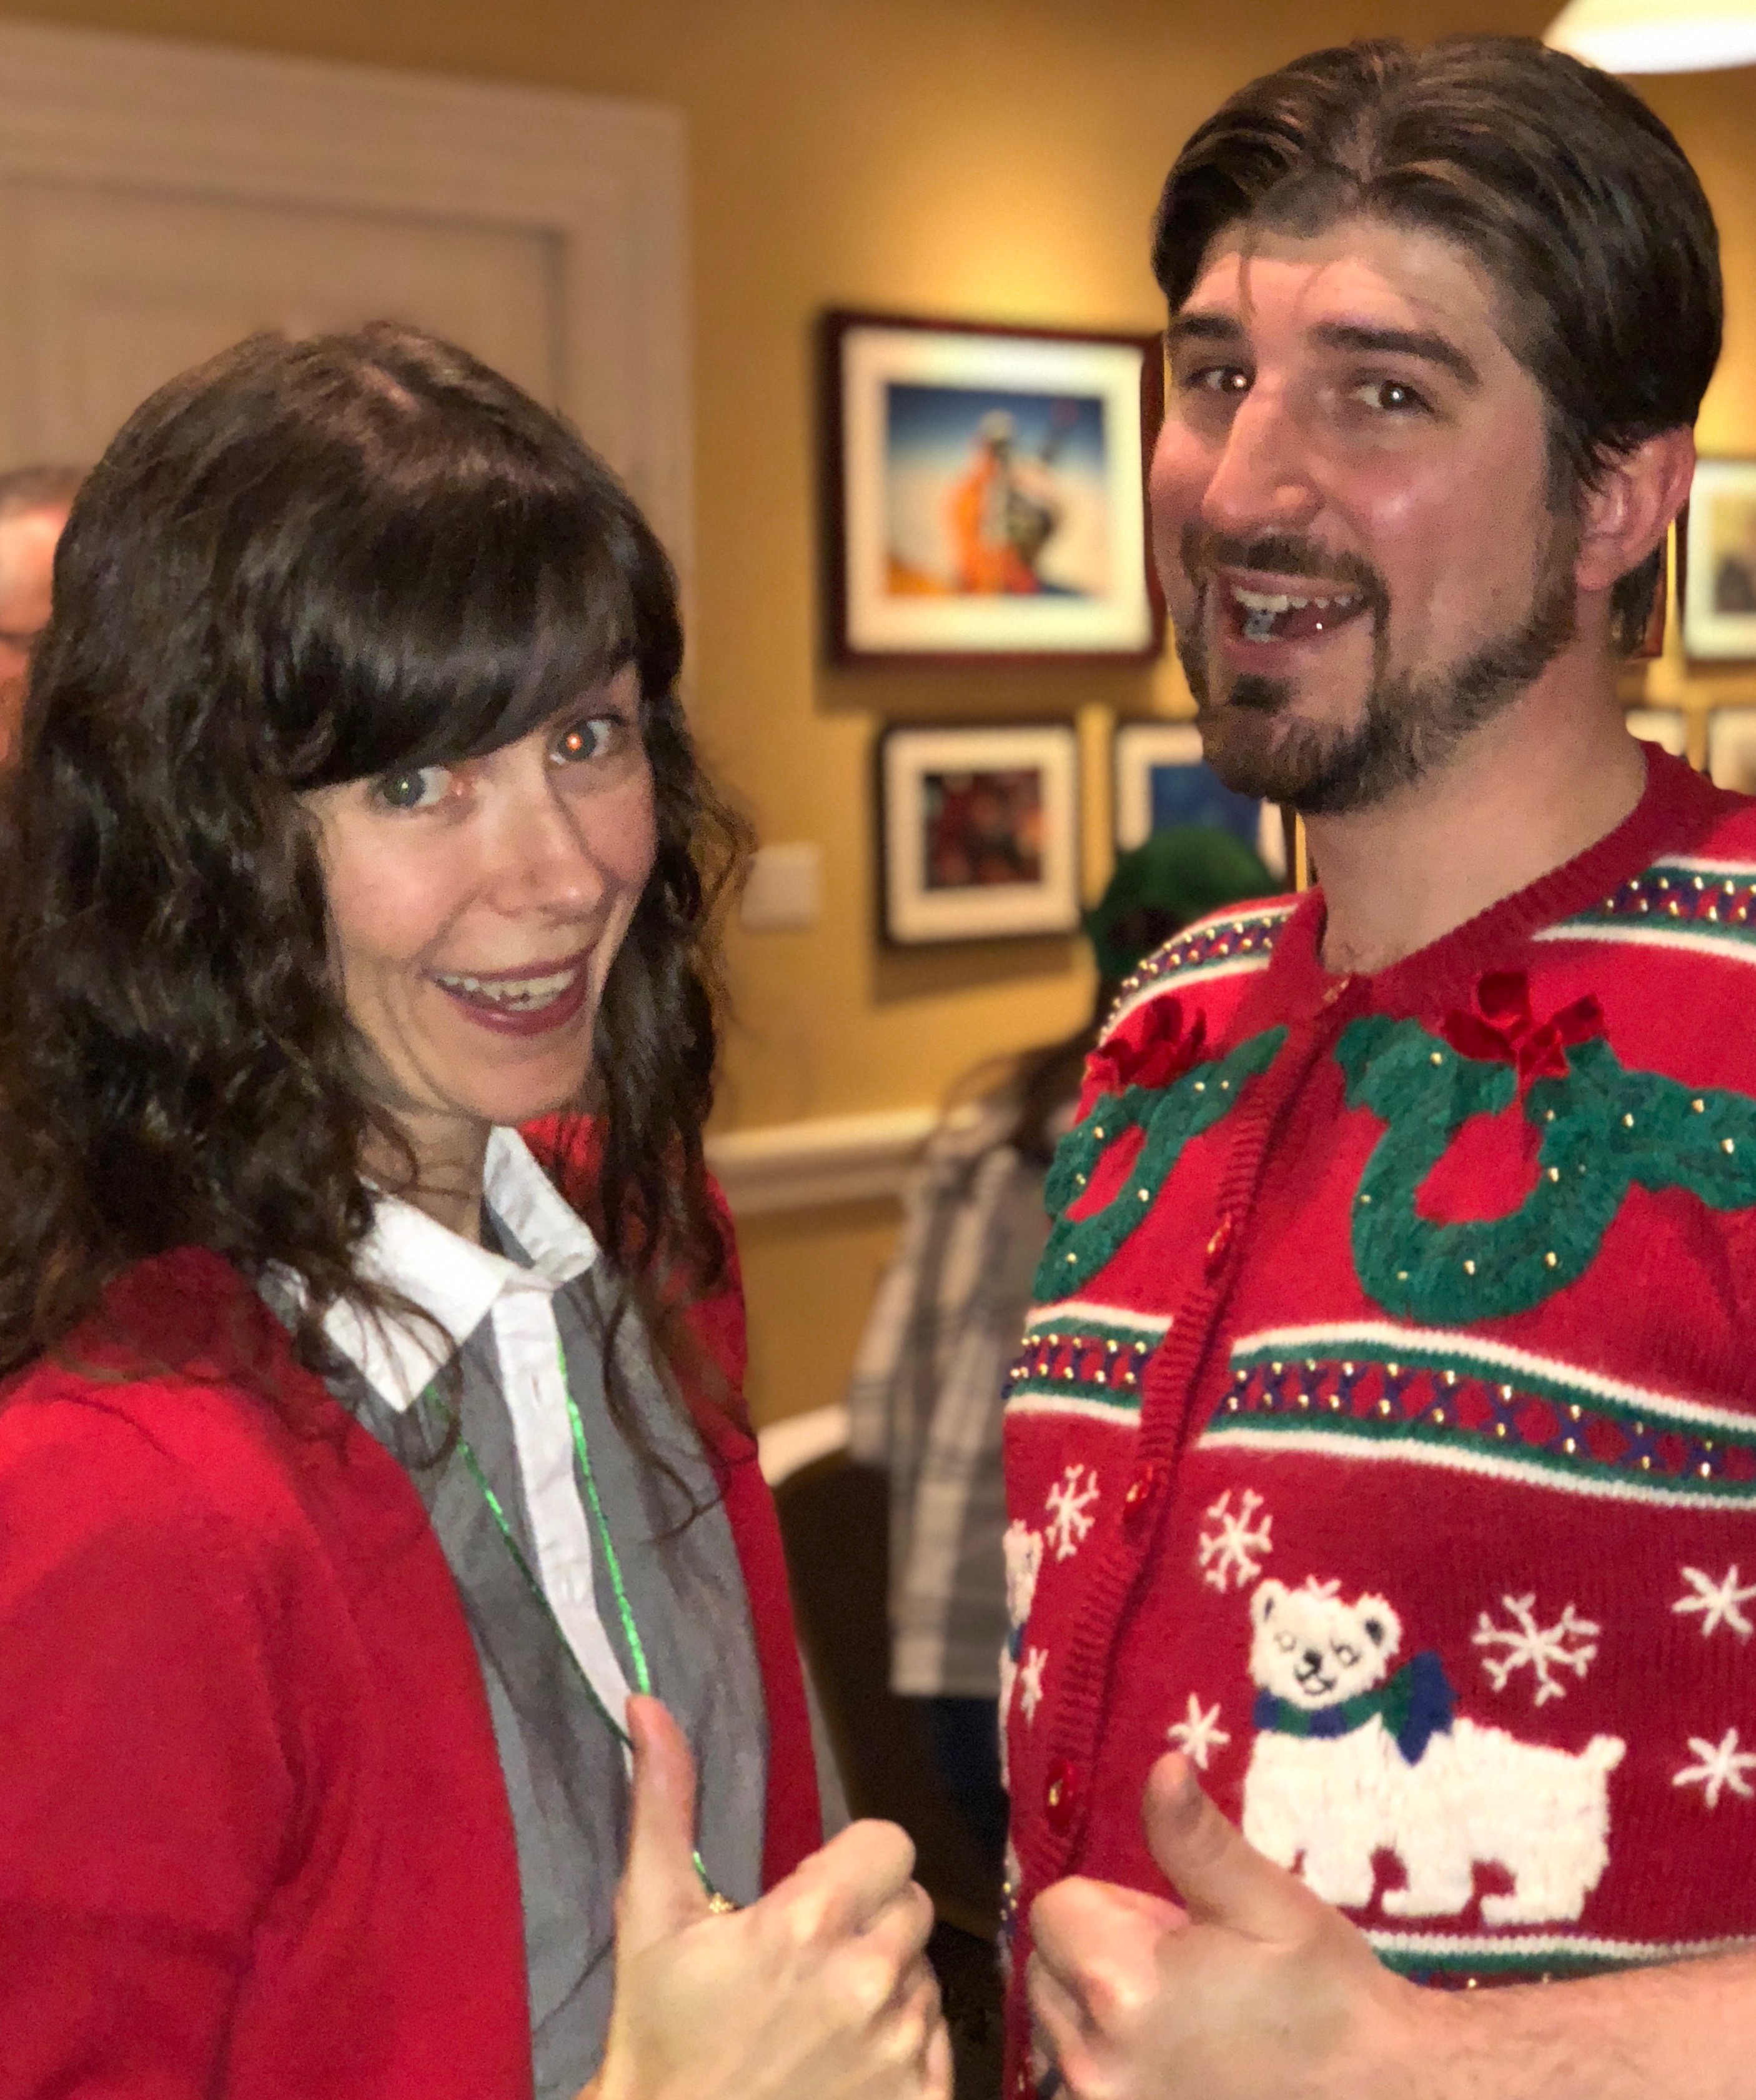 Rock Your Ugly Christmas Sweater Thumbs Up For Vintage Ugly Sweaters